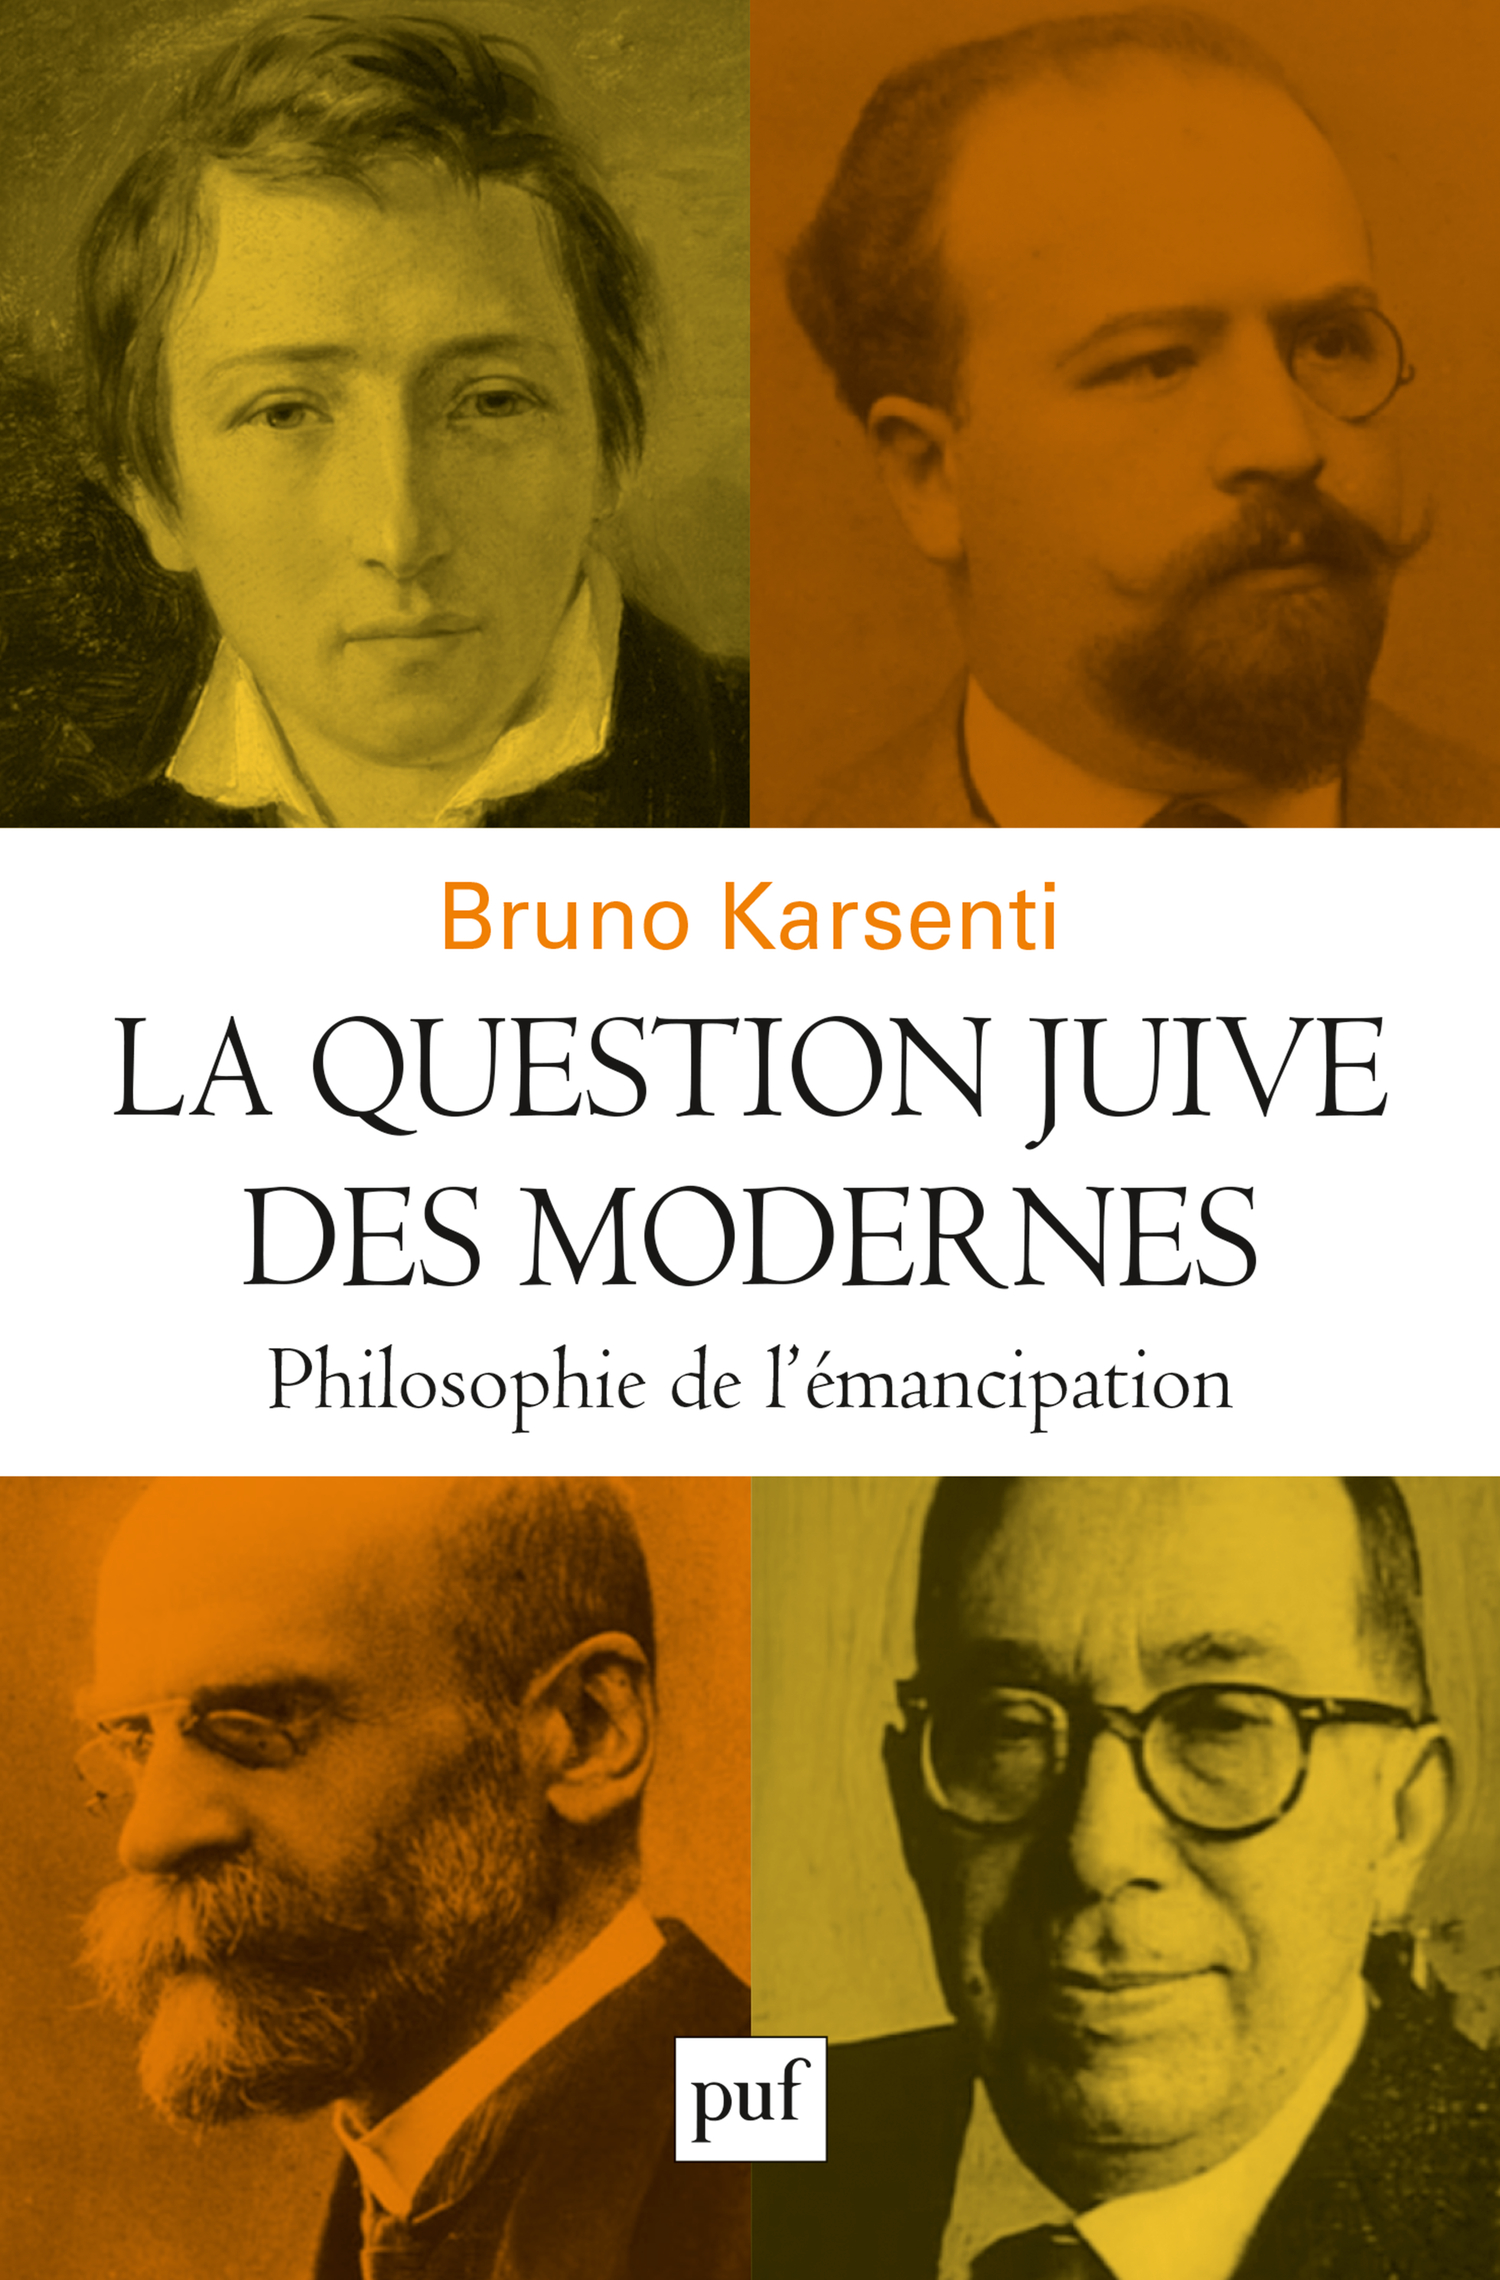 La question juive des modernes De Bruno Karsenti - Presses Universitaires de France